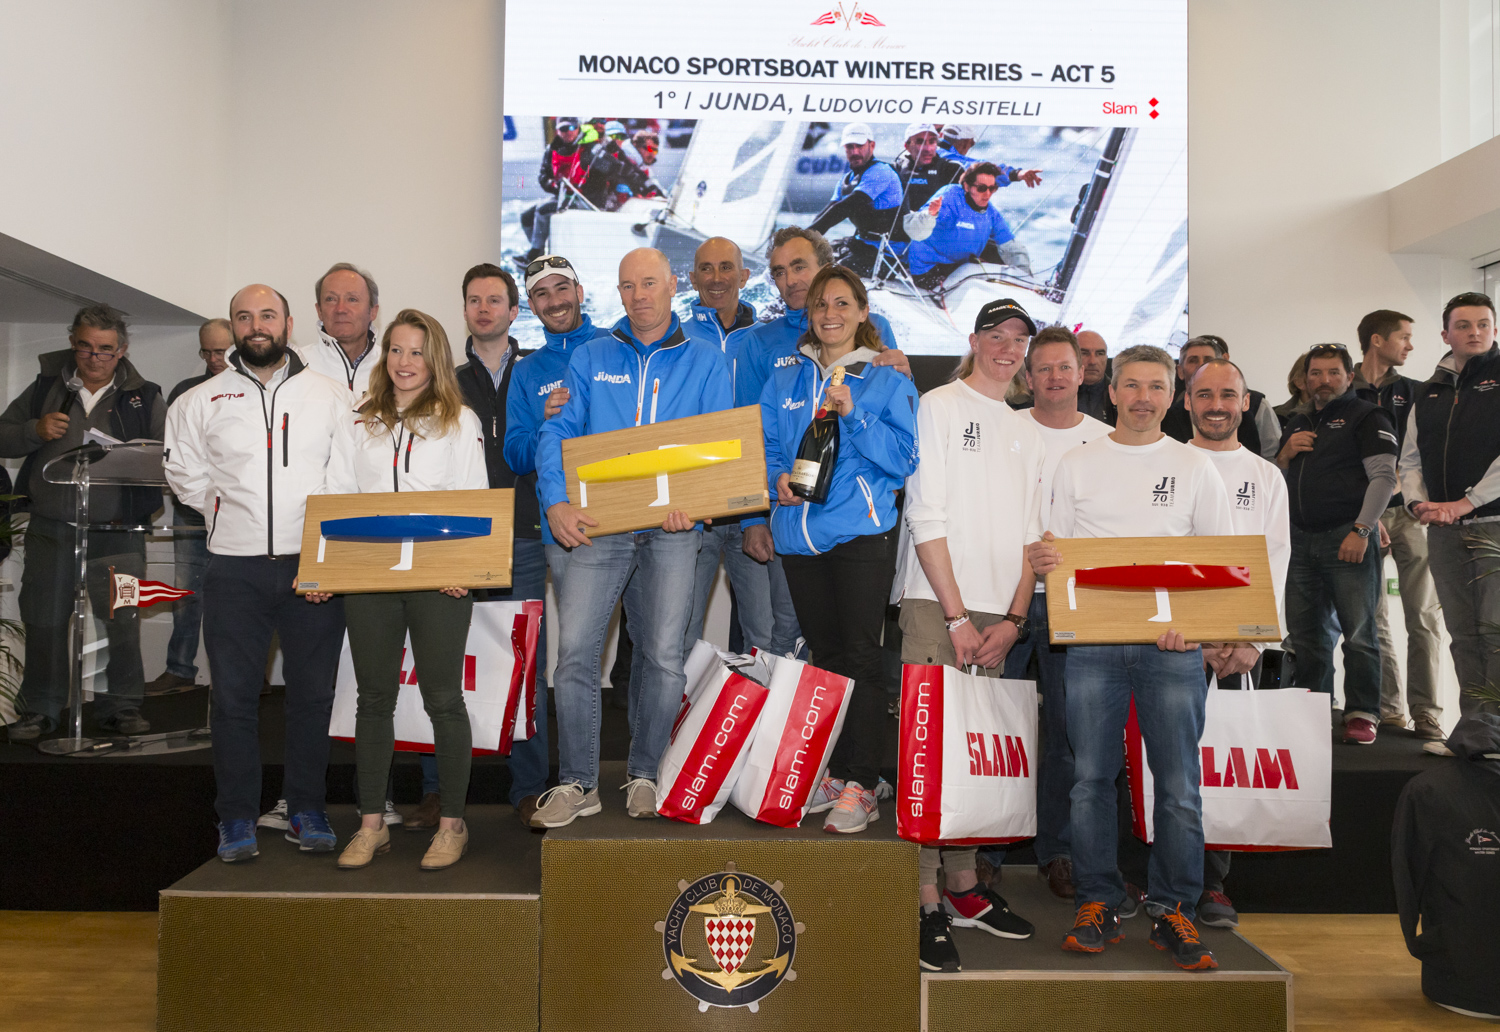 Monaco Sportsboat Winter Series 2017 - ACT 5